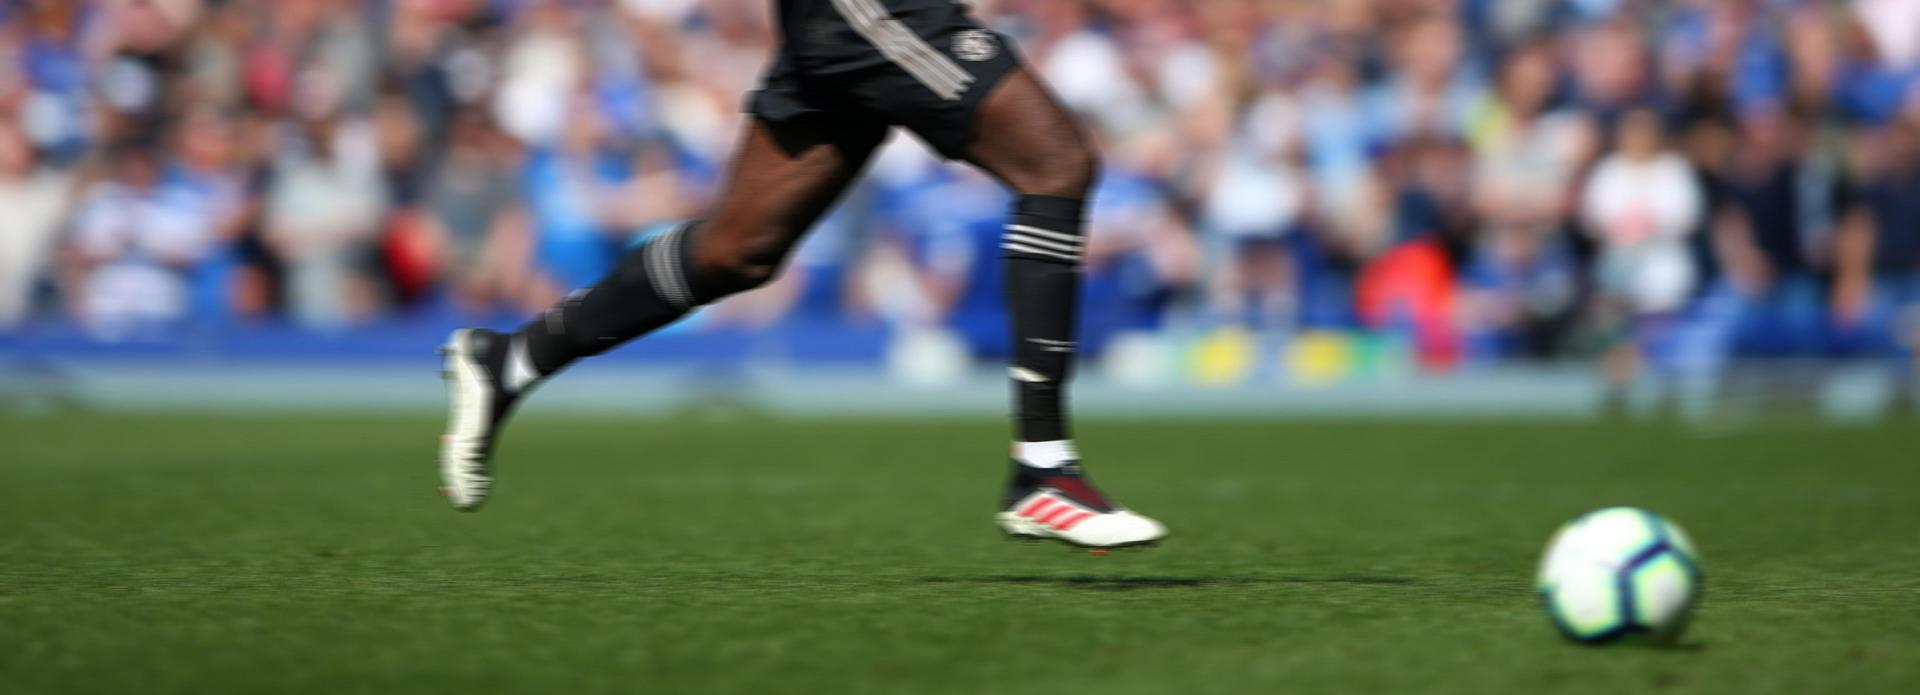 Close-up of Manchester United player's feet as he runs with the ball,